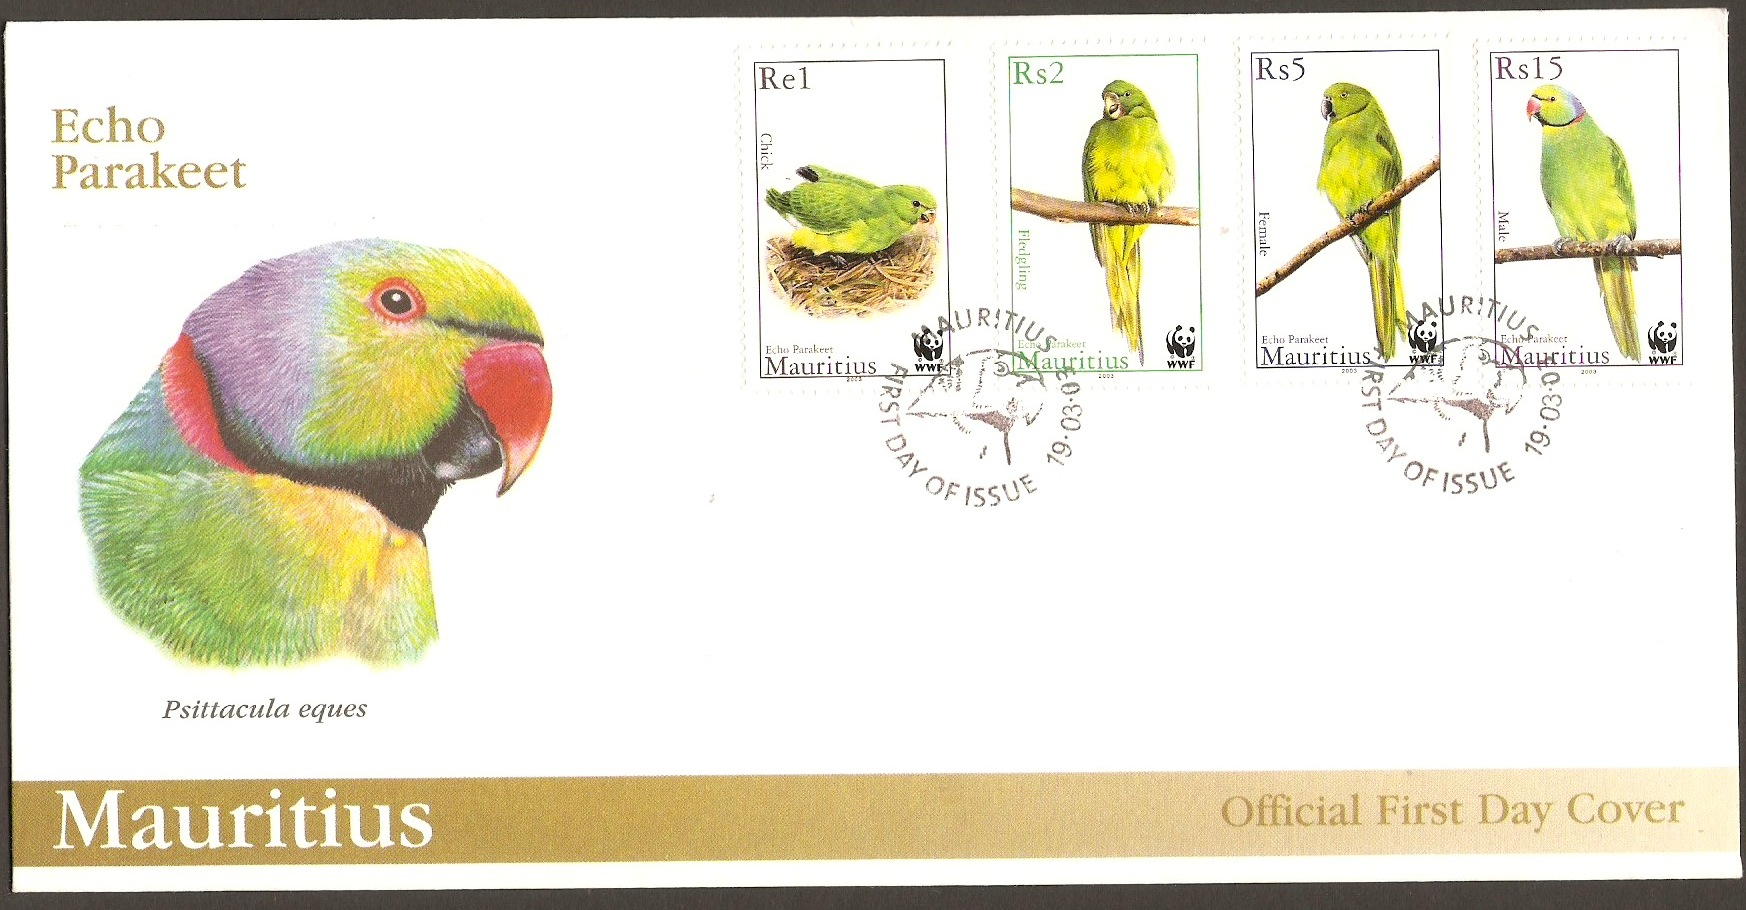 Mauritius 2001 Endangered Species Series FDC.